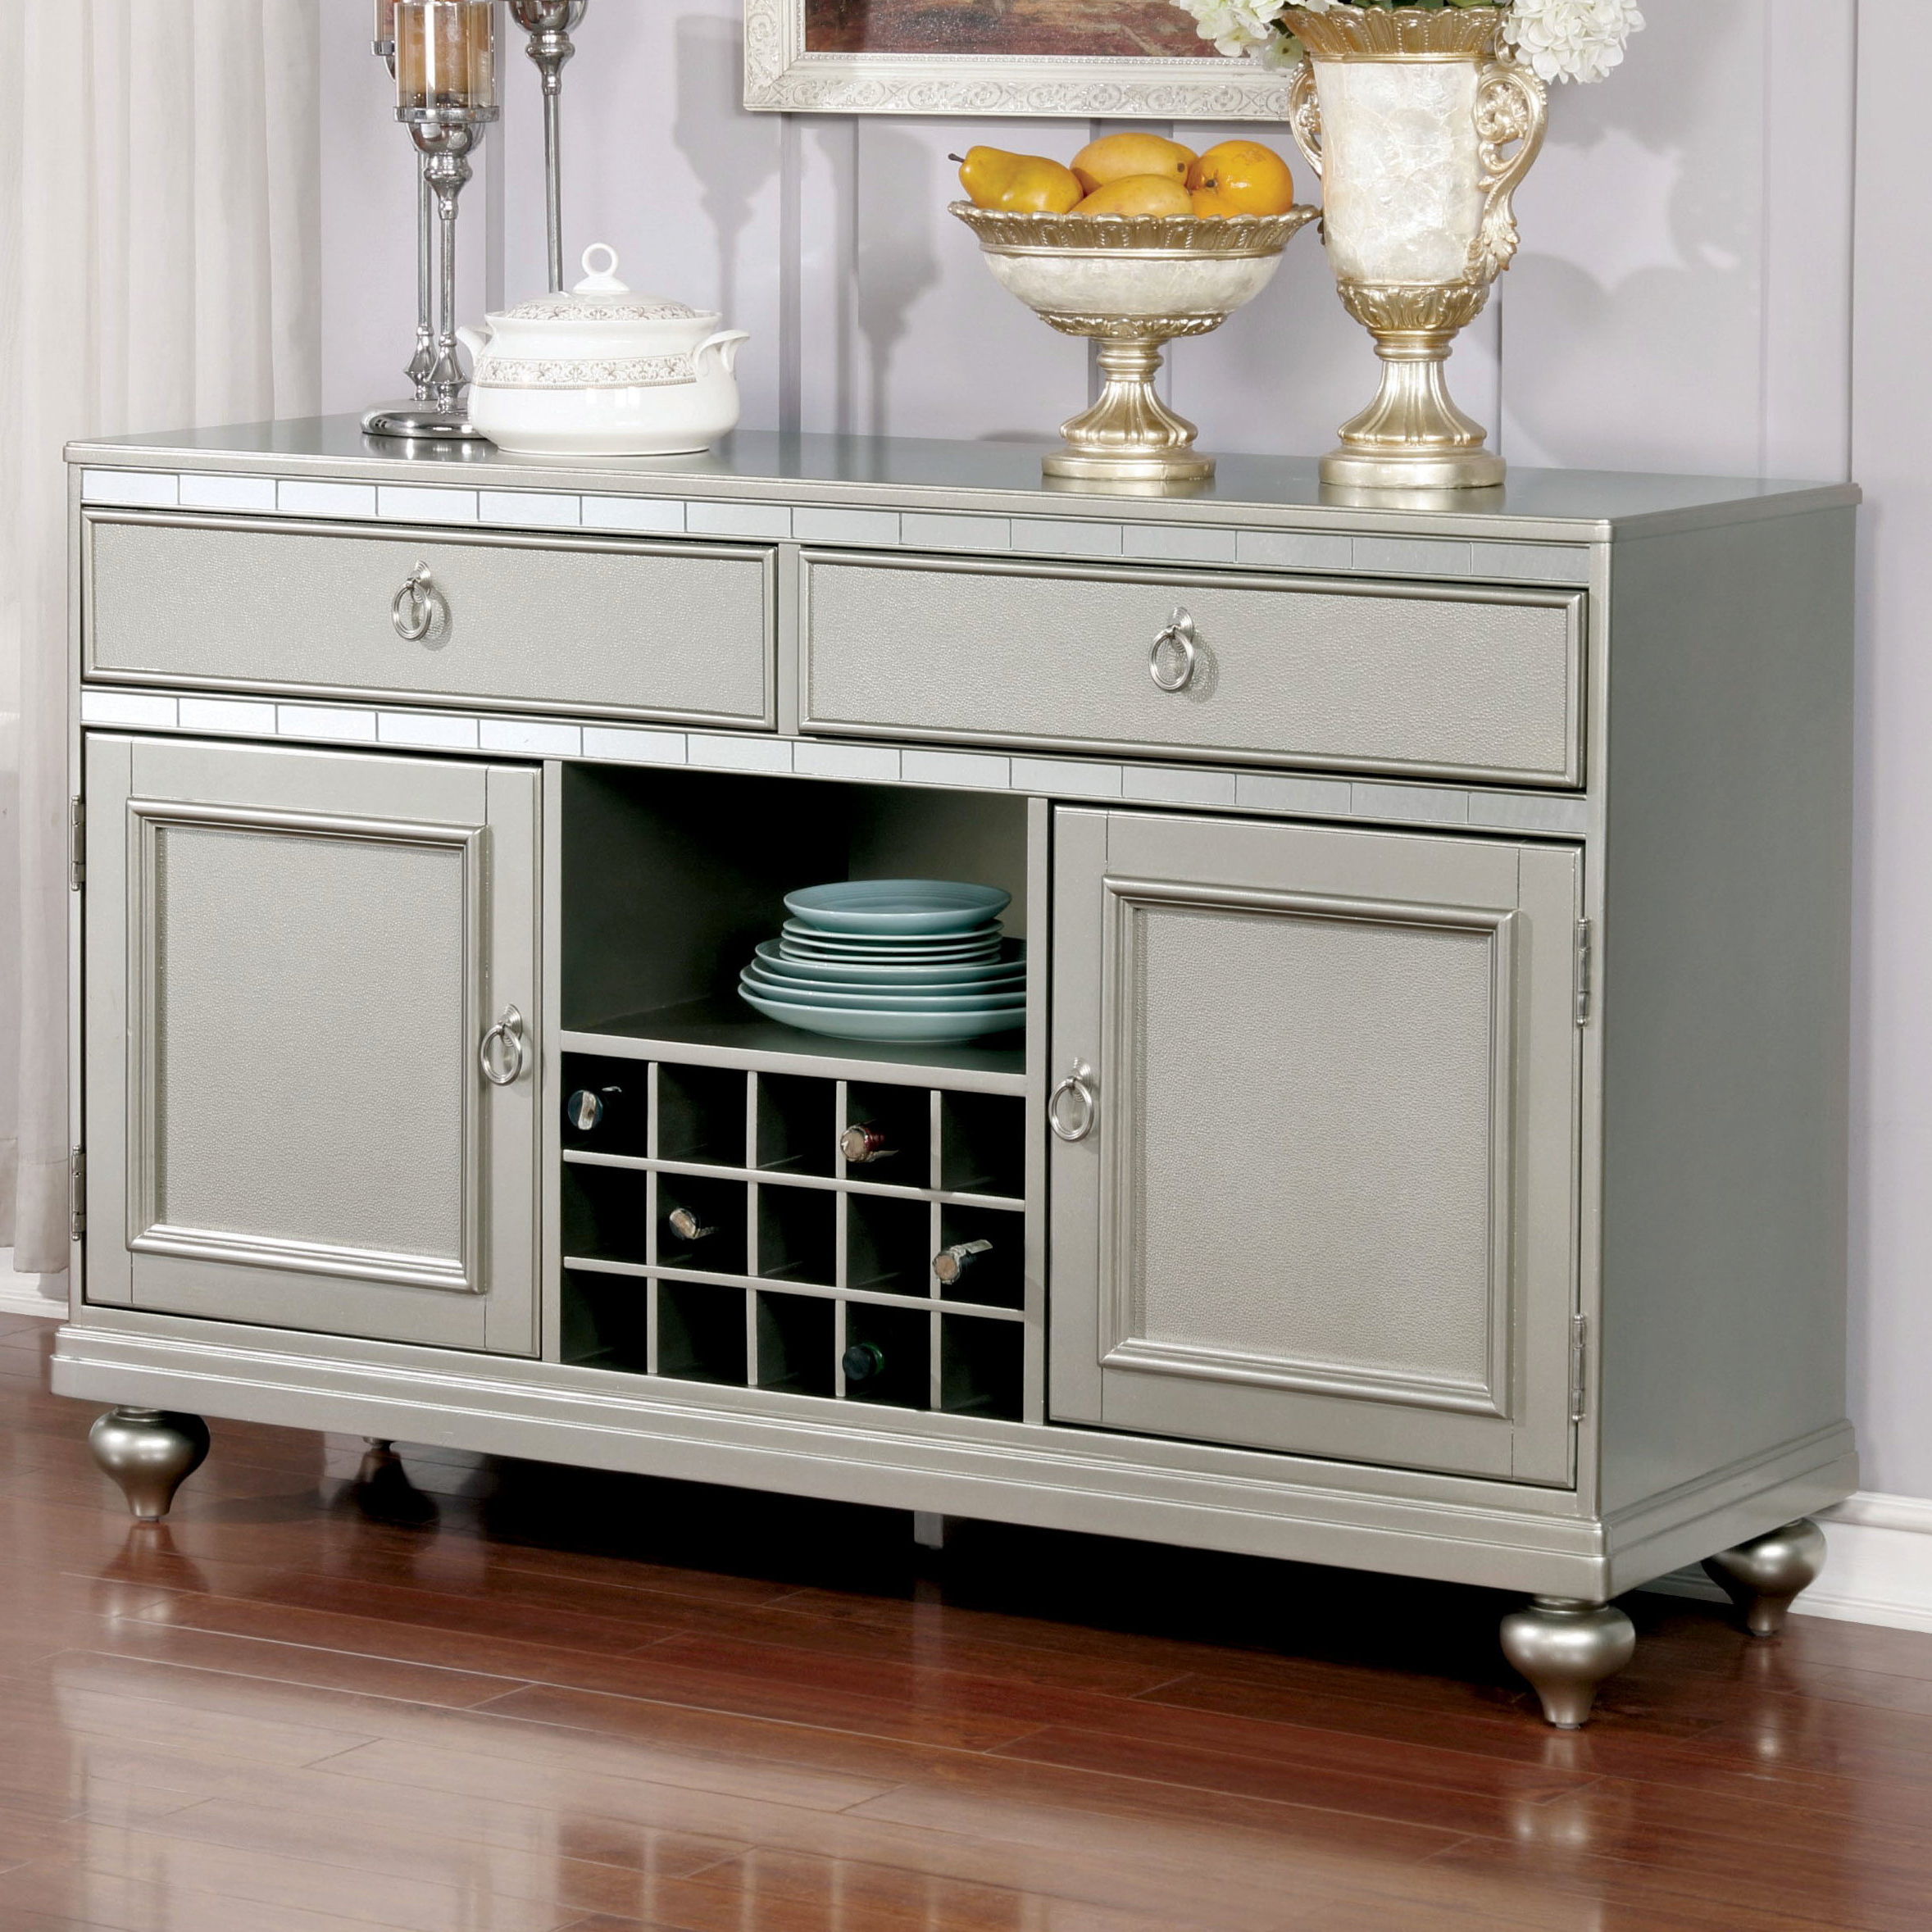 Grey Metal Sideboards & Buffets You'll Love In 2019 | Wayfair Pertaining To Casolino Sideboards (View 5 of 20)